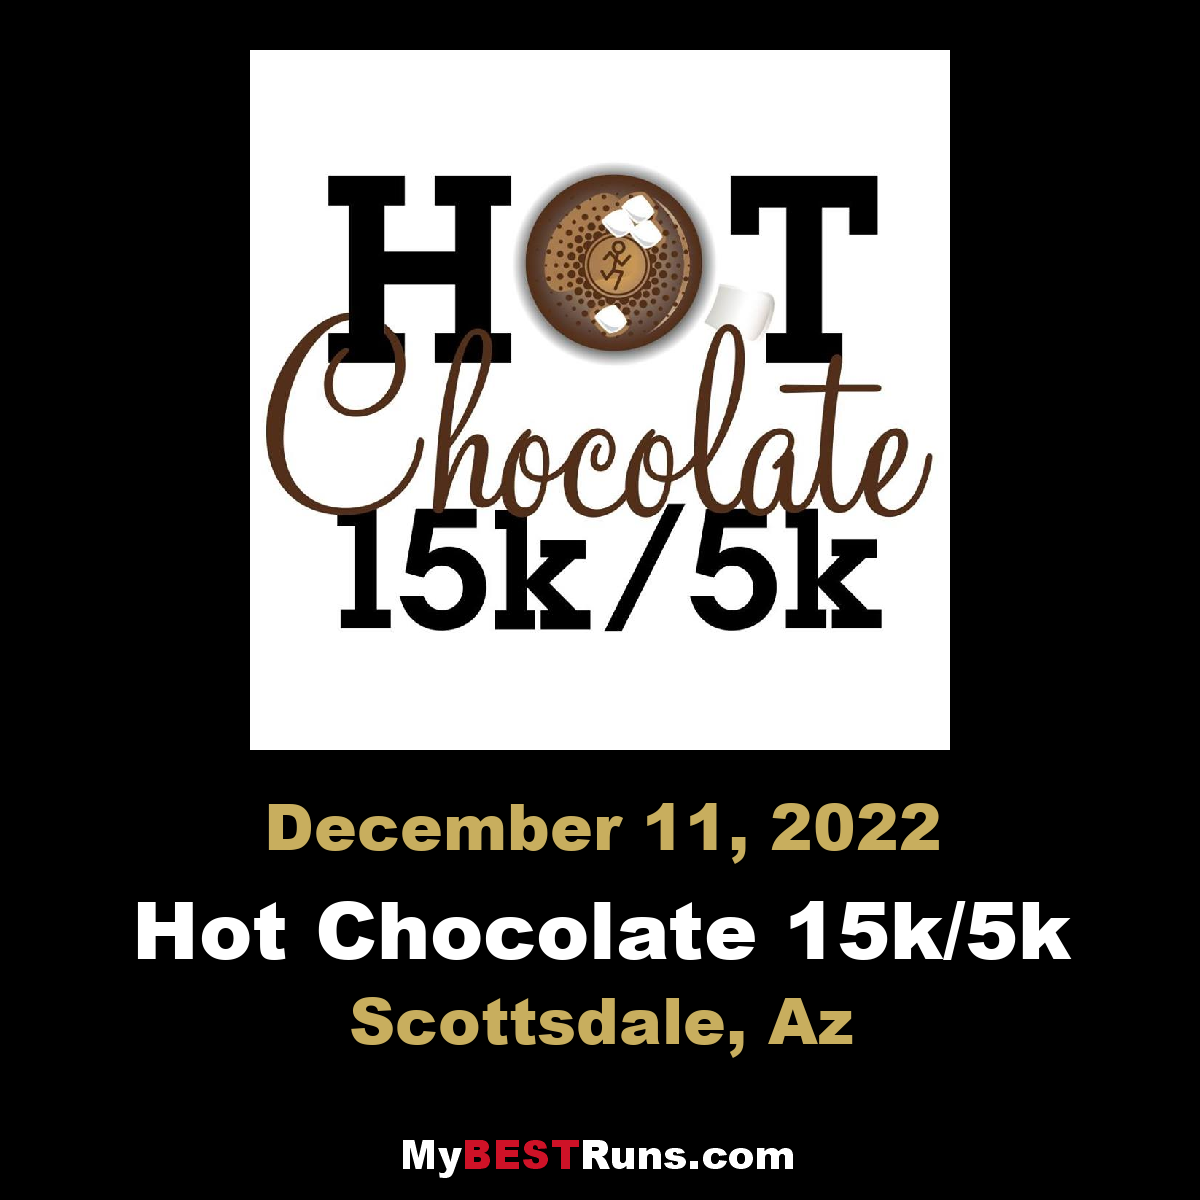 Hot Chocolate Scottsdale